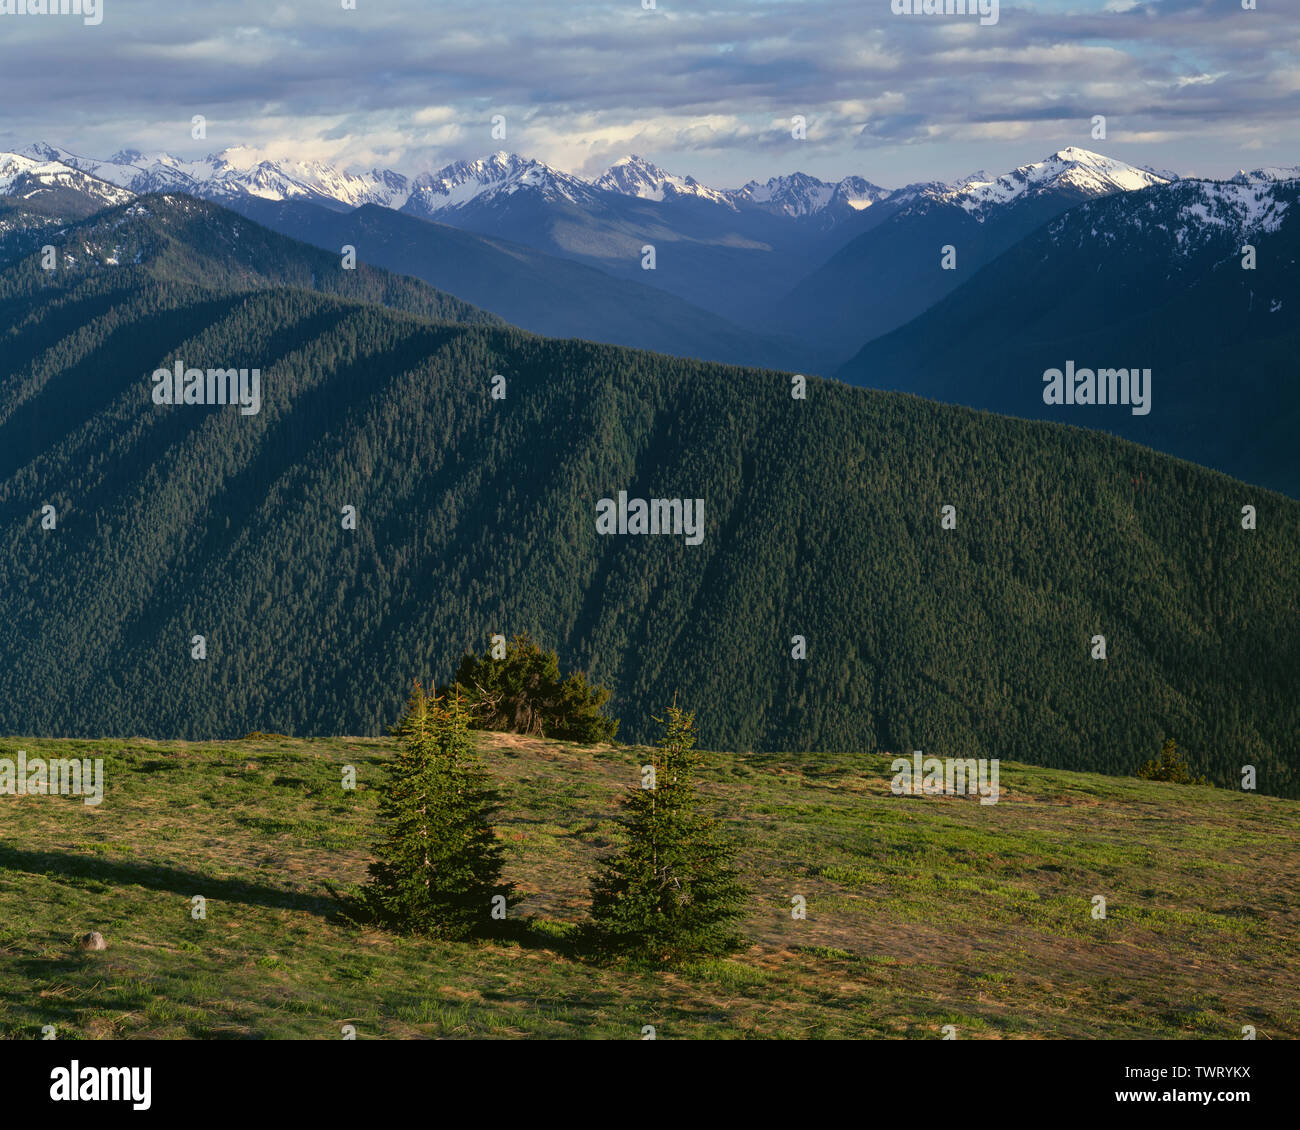 USA, Washington, Olympic National Park, Late springtime view south from near Hurricane Ridge towards ridgeline and Elwah River Valley (top right). Stock Photo